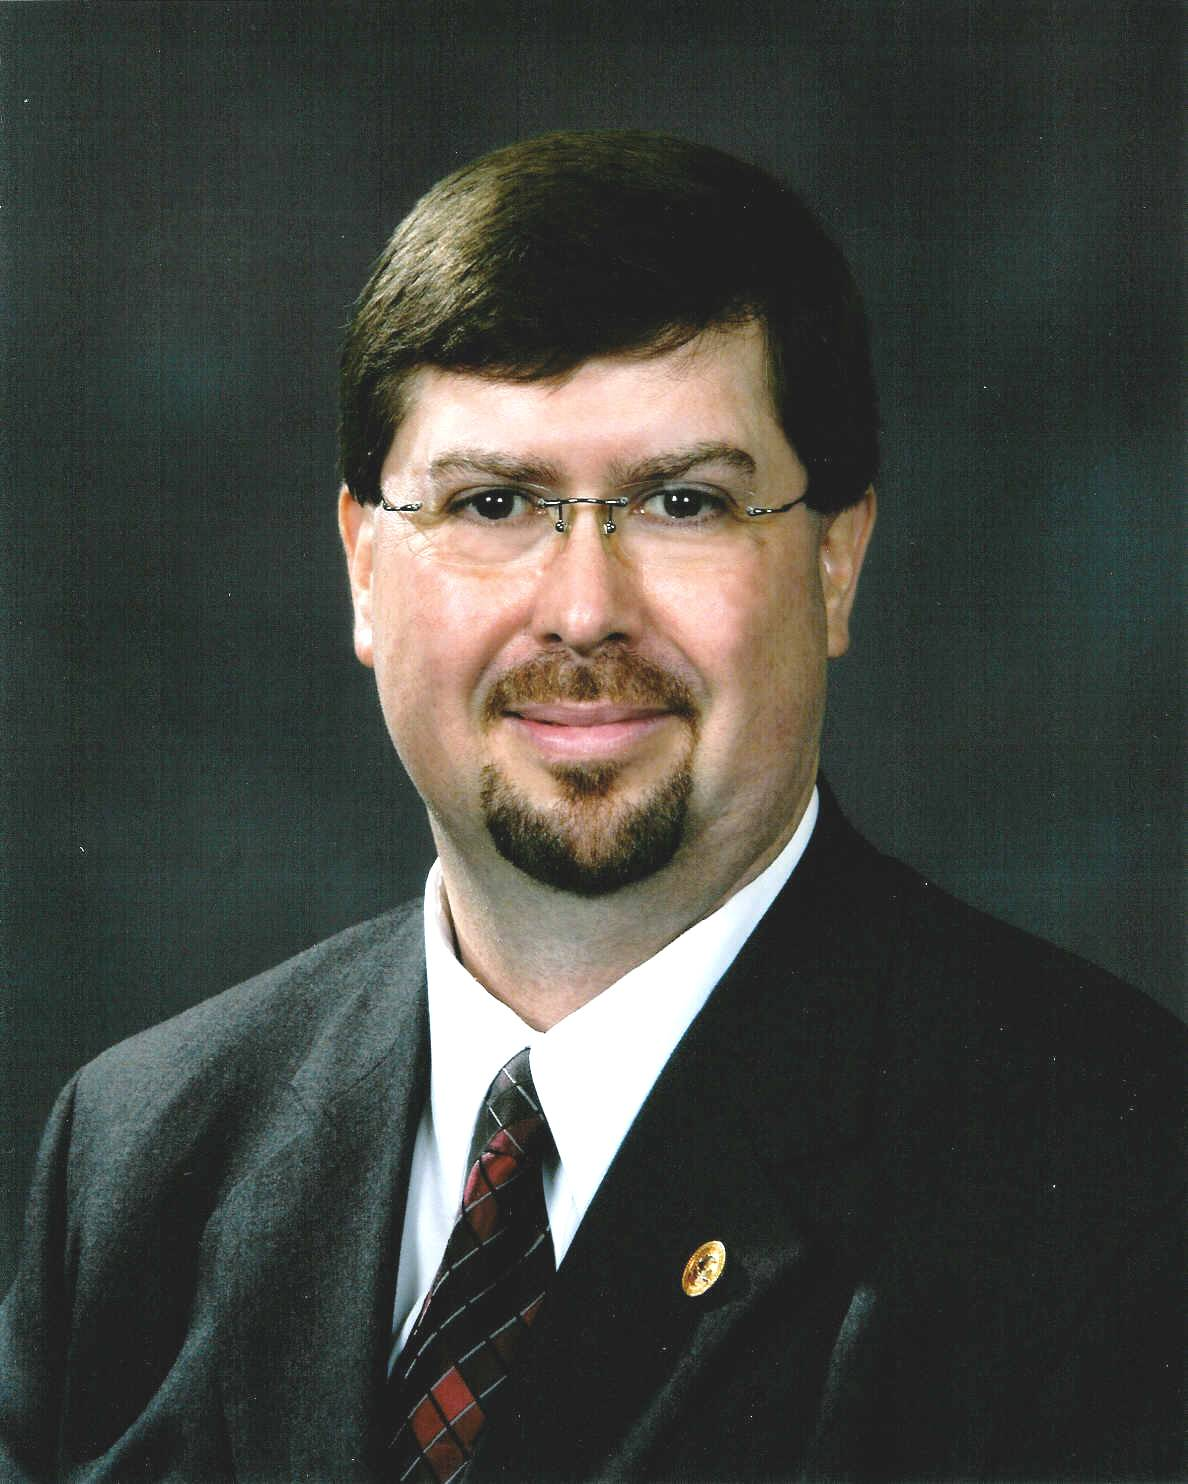 Randy Ramey, running for 23rd District Senate